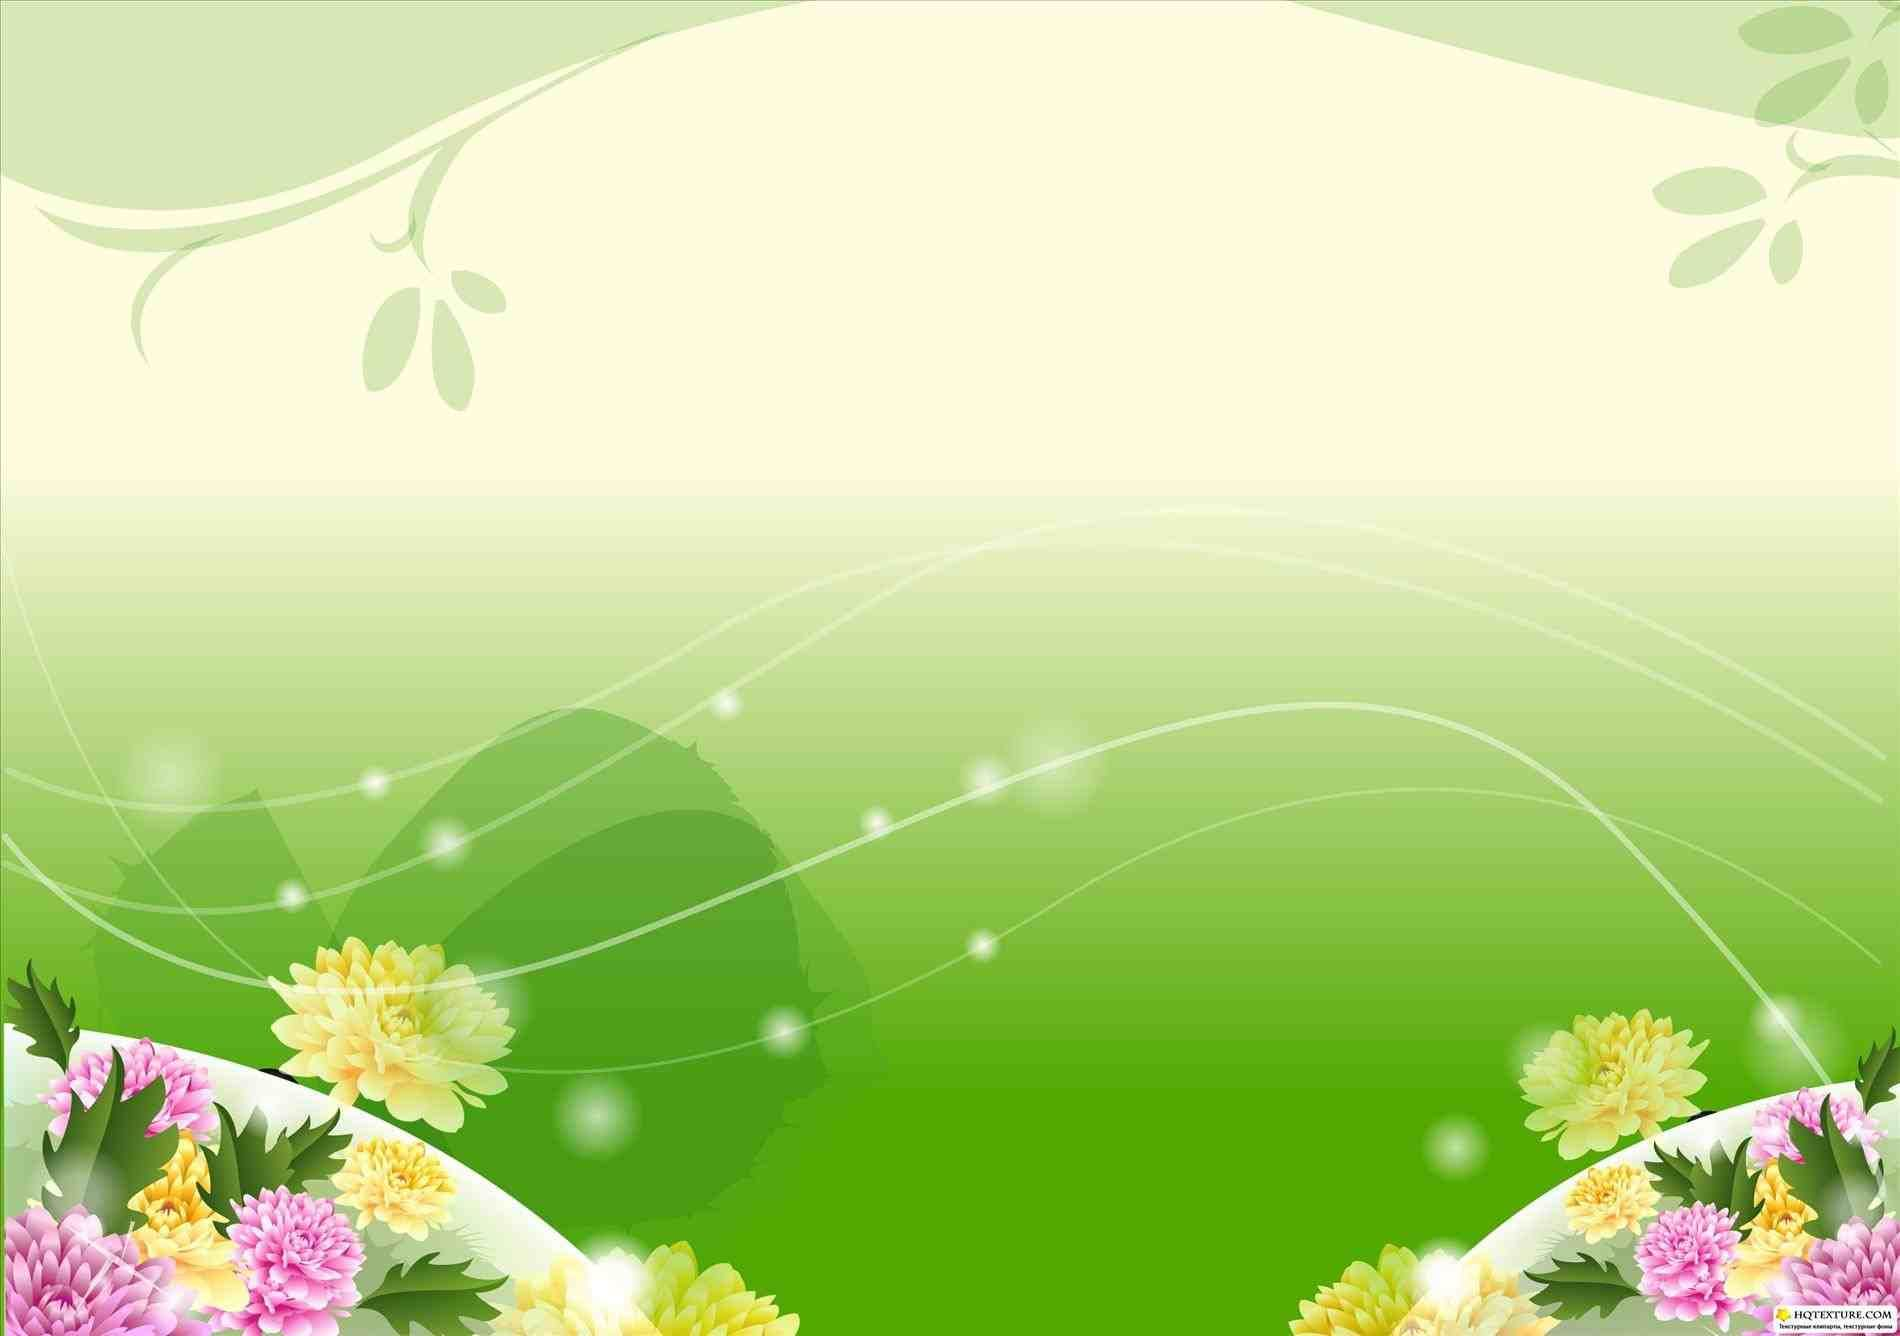 Image Result For Marriage Poster For Car Online Editing Wedding Background Free Download Photoshop Background Design